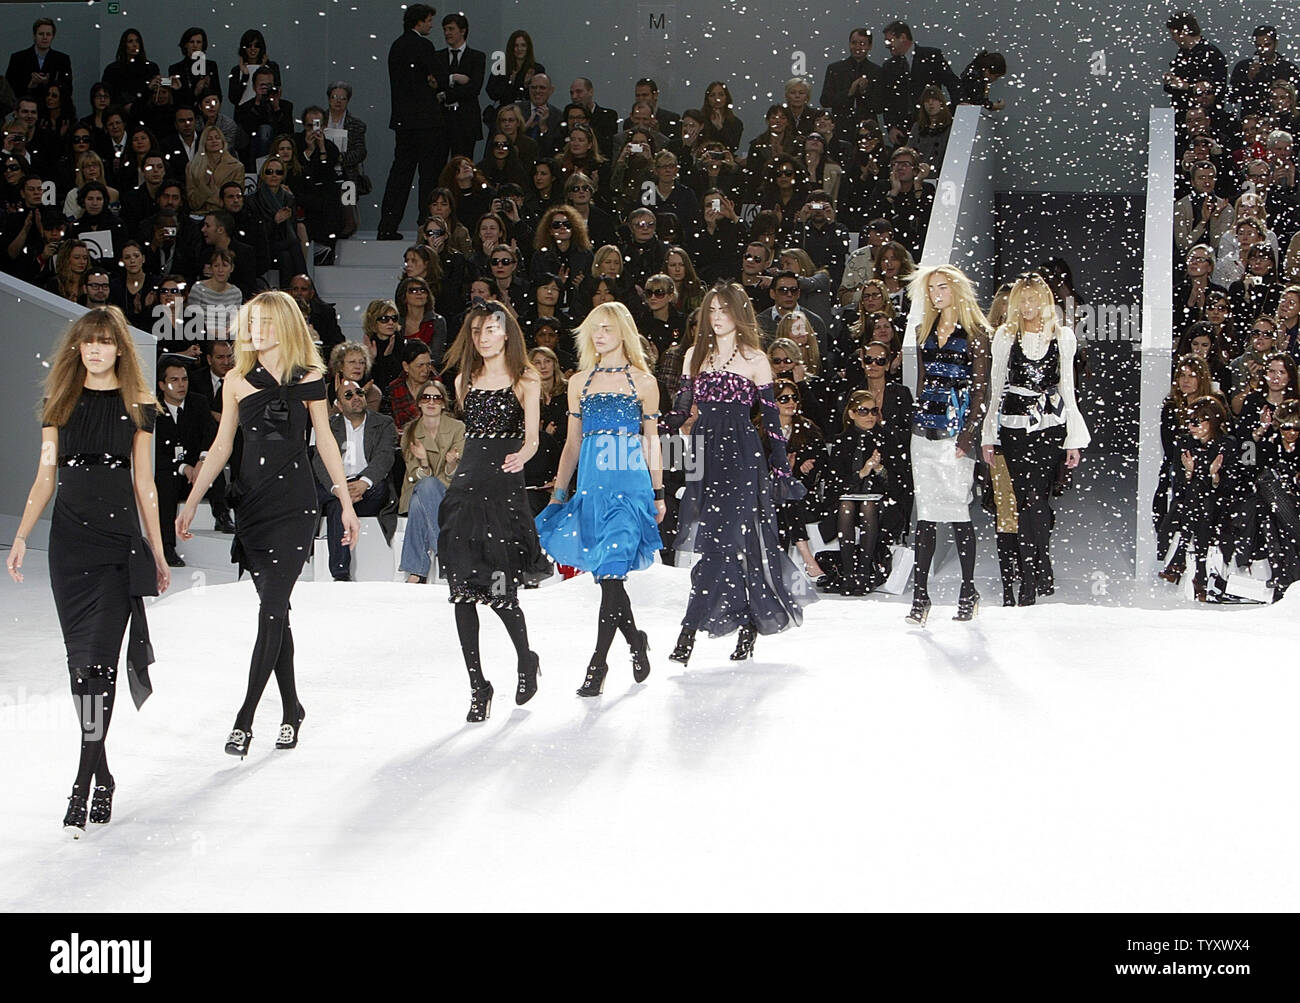 Models line up on the catwalk under a snow of  paper-made snowflakes with outfits by German fashion designer Karl Lagerfeld at the end of the presentation of his 2007-2008 Fall/Winter ready-to-wear collection for Chanel in Paris, March 2, 2007. (UPI Photo/Eco Clement) - Stock Image